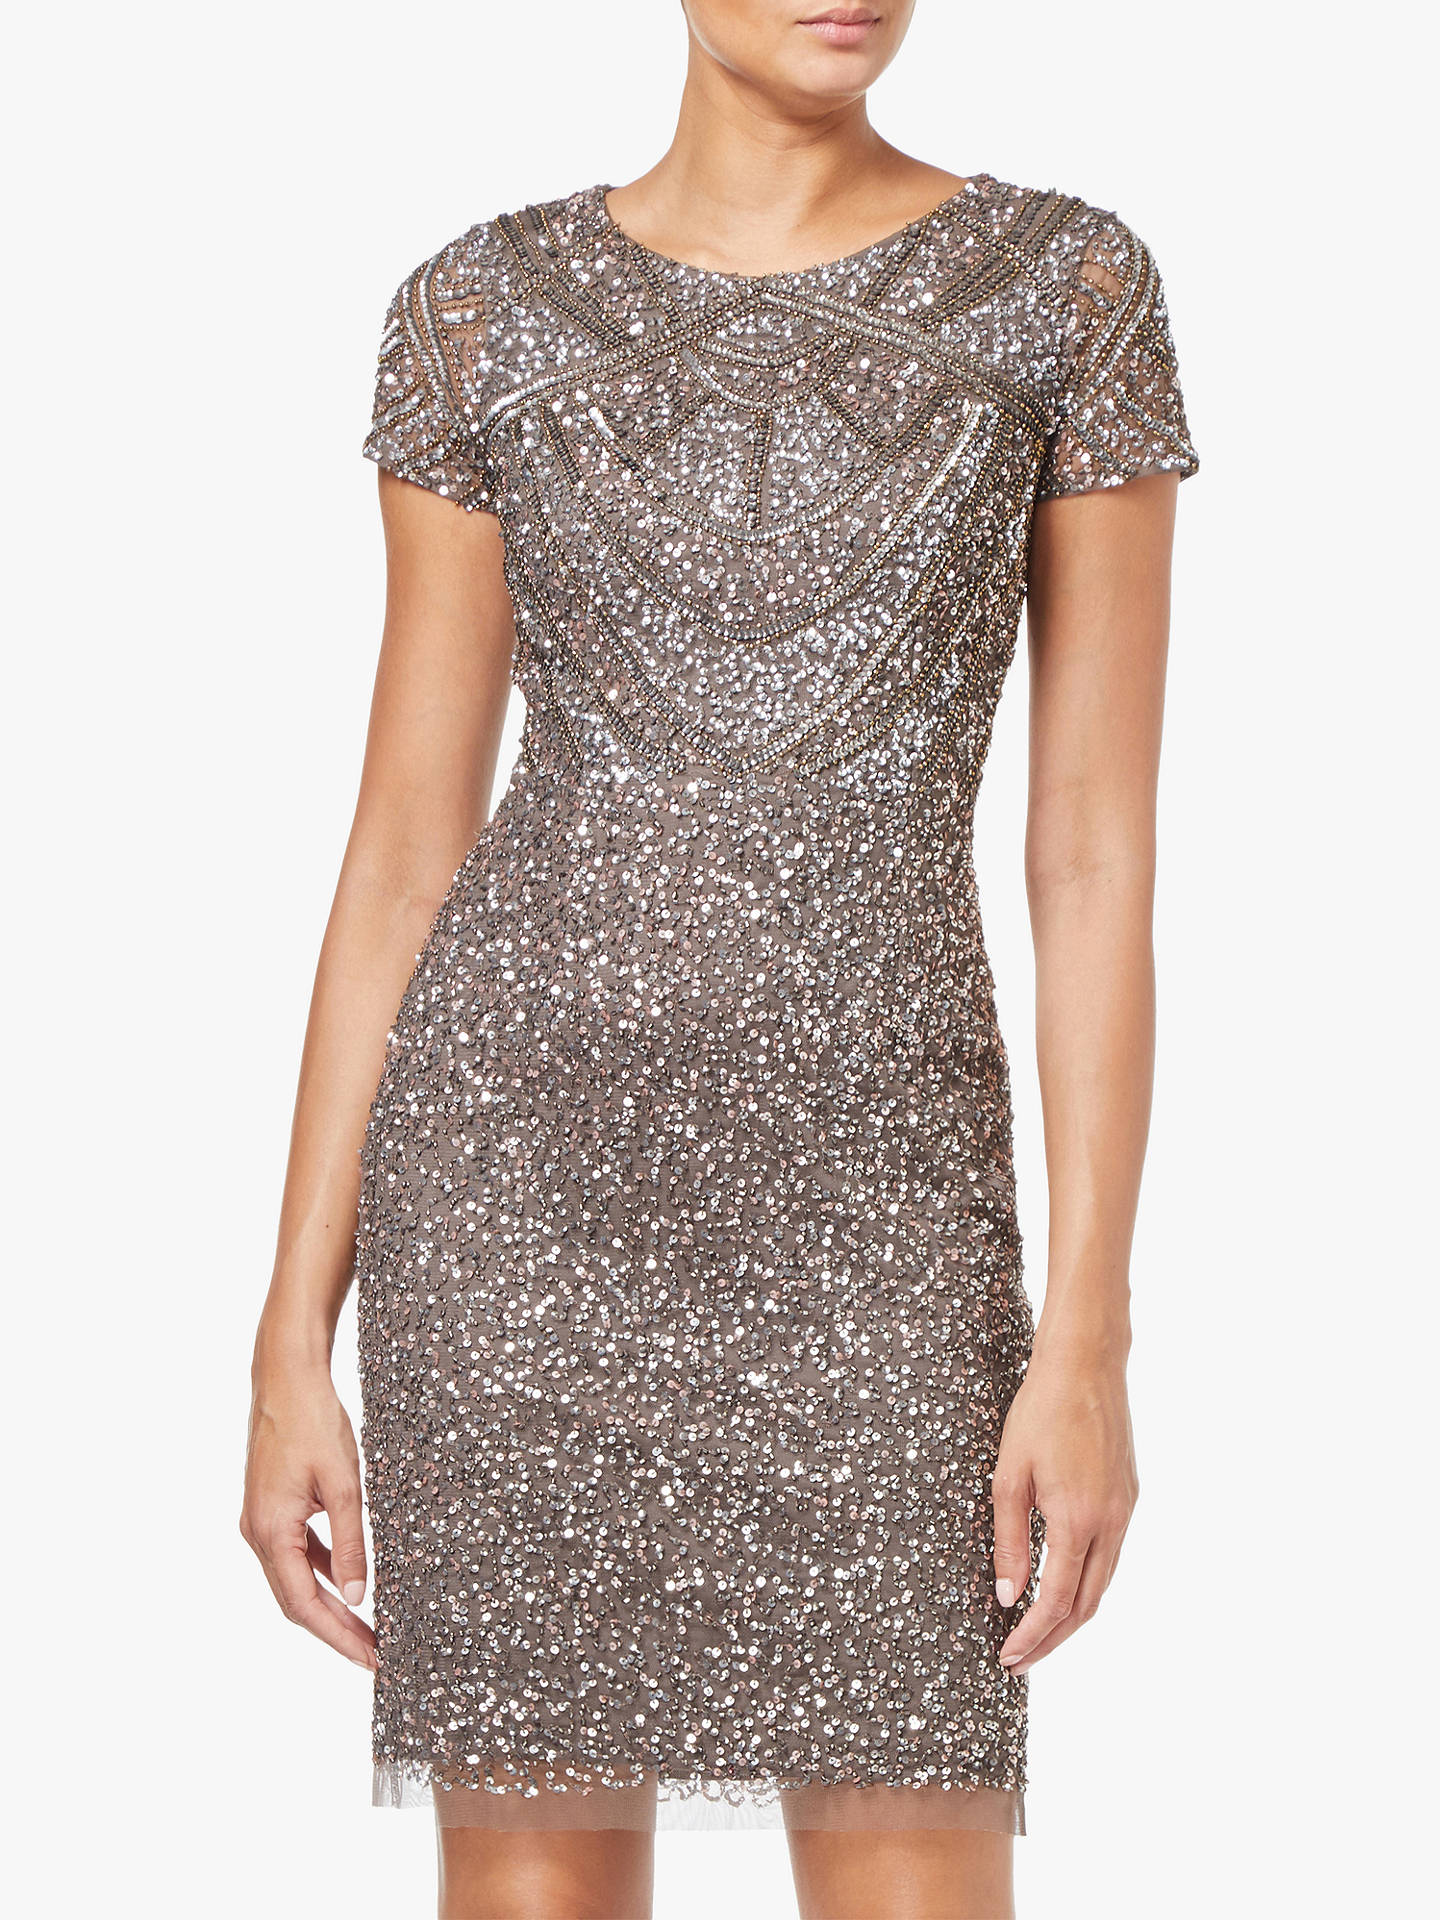 774836748d5 Buy Adrianna Papell Short Sleeve Beaded Cocktail Dress, Lead, 8 Online at  johnlewis.